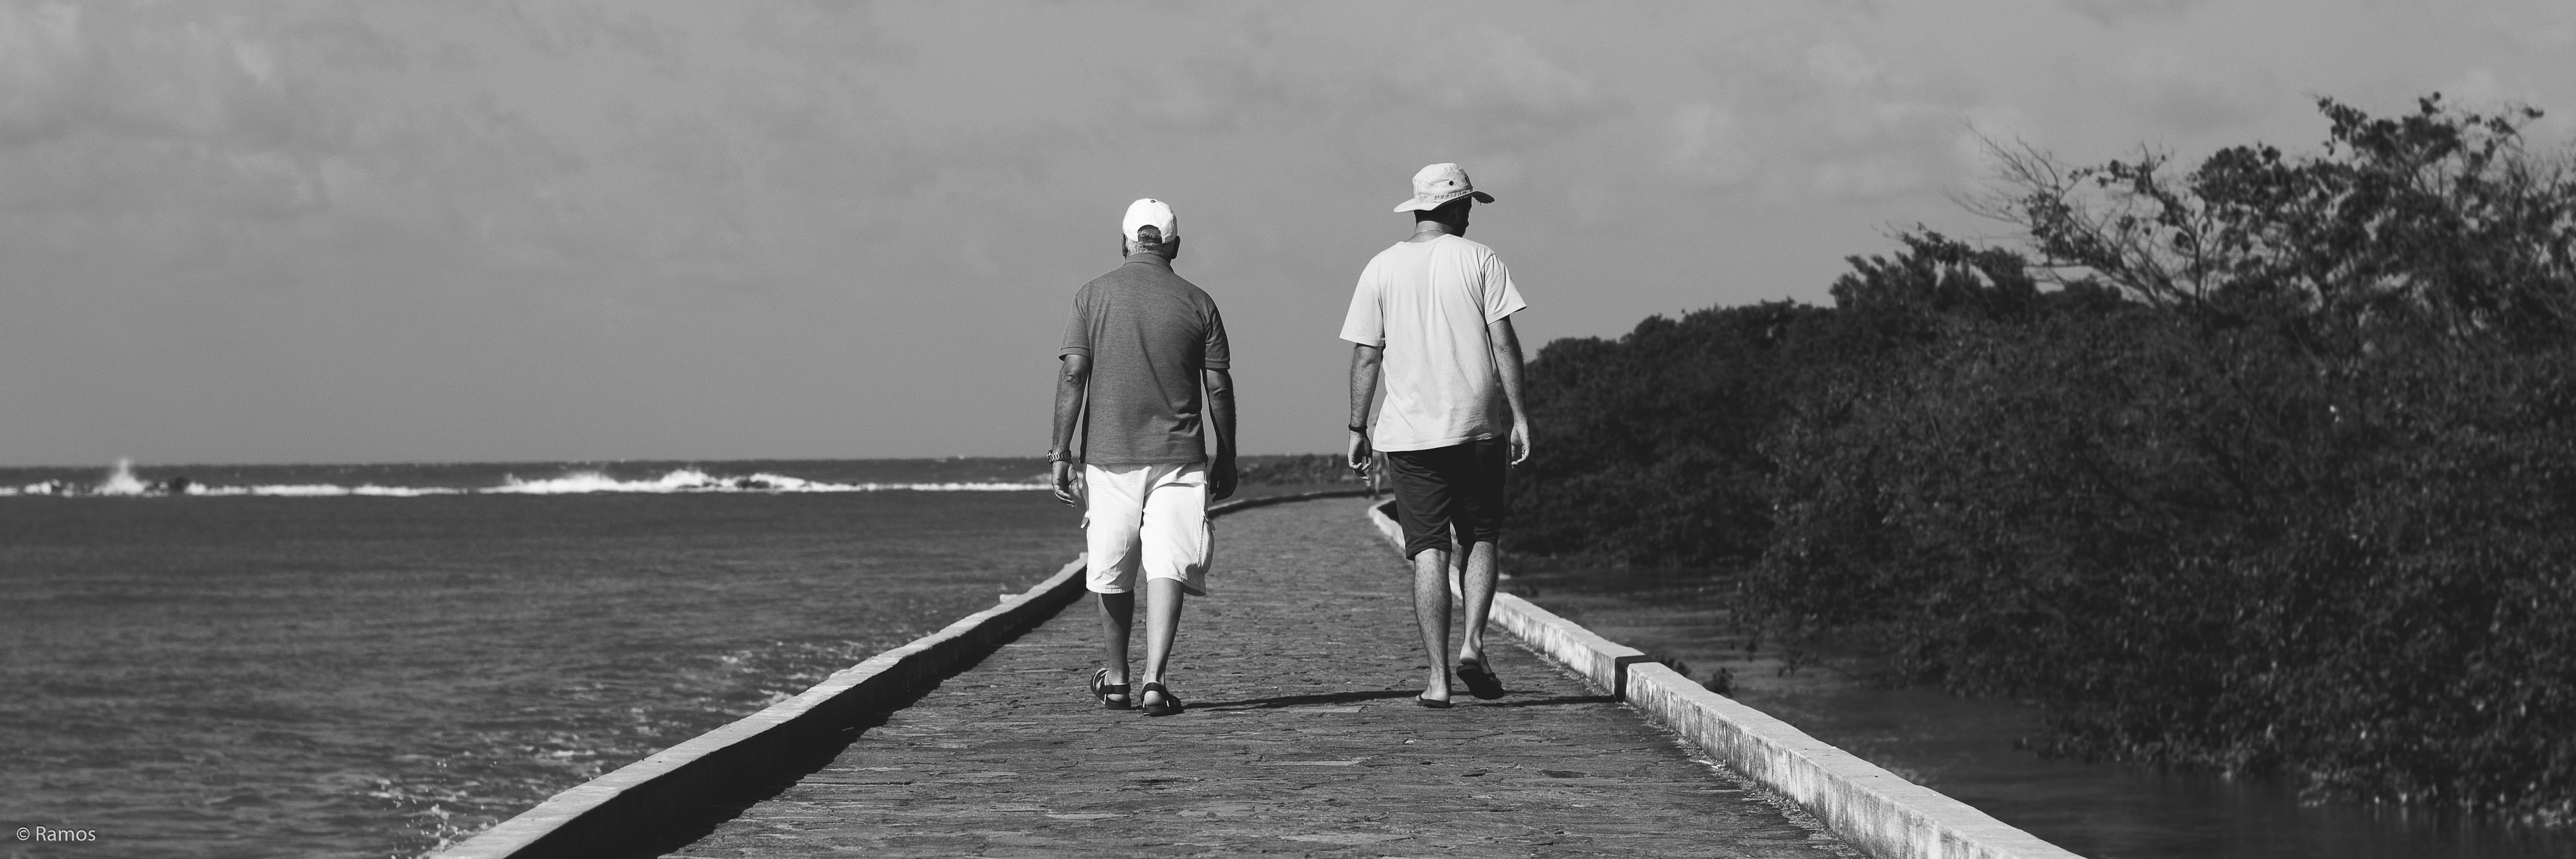 rear view, men, horizon over water, sea, water, full length, togetherness, day, casual clothing, remote, solitude, the way forward, long, tranquility